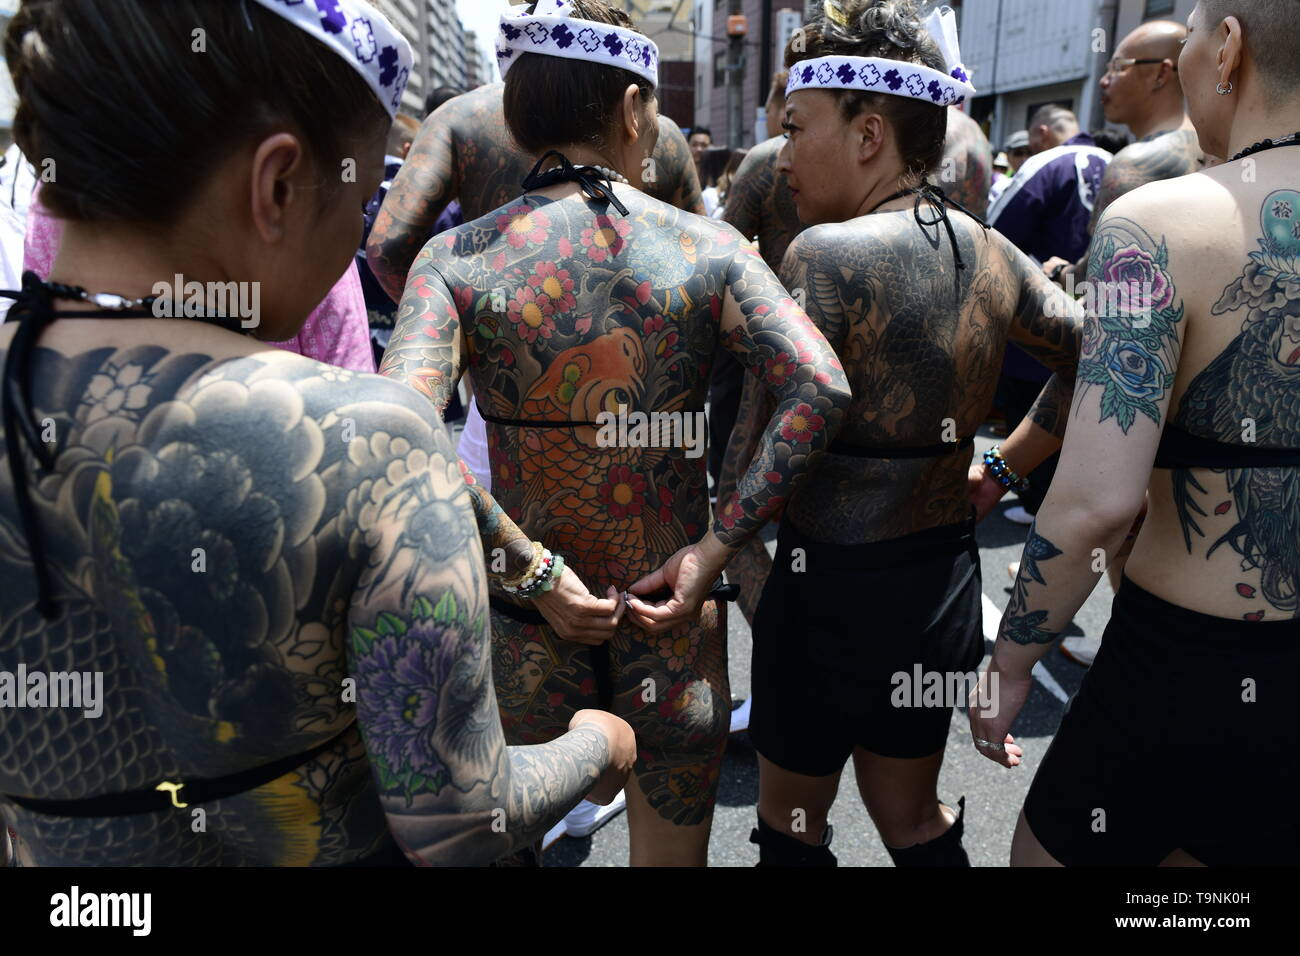 "TOKYO, JAPAN - MAY 18: Heavily tattooed Japanese women chat in the street as they wait for the portable shrine in the street of Asakusa during ""Sanja Matsuri"" on May 18, 2019 in Tokyo, Japan. A boisterous traditional mikoshi (portable shrine) is carried in the streets of Asakusa to bring goodluck, blessings and prosperity to the area and its inhabitants. (Photo: Richard Atrero de Guzman/ AFLO) Stock Photo"